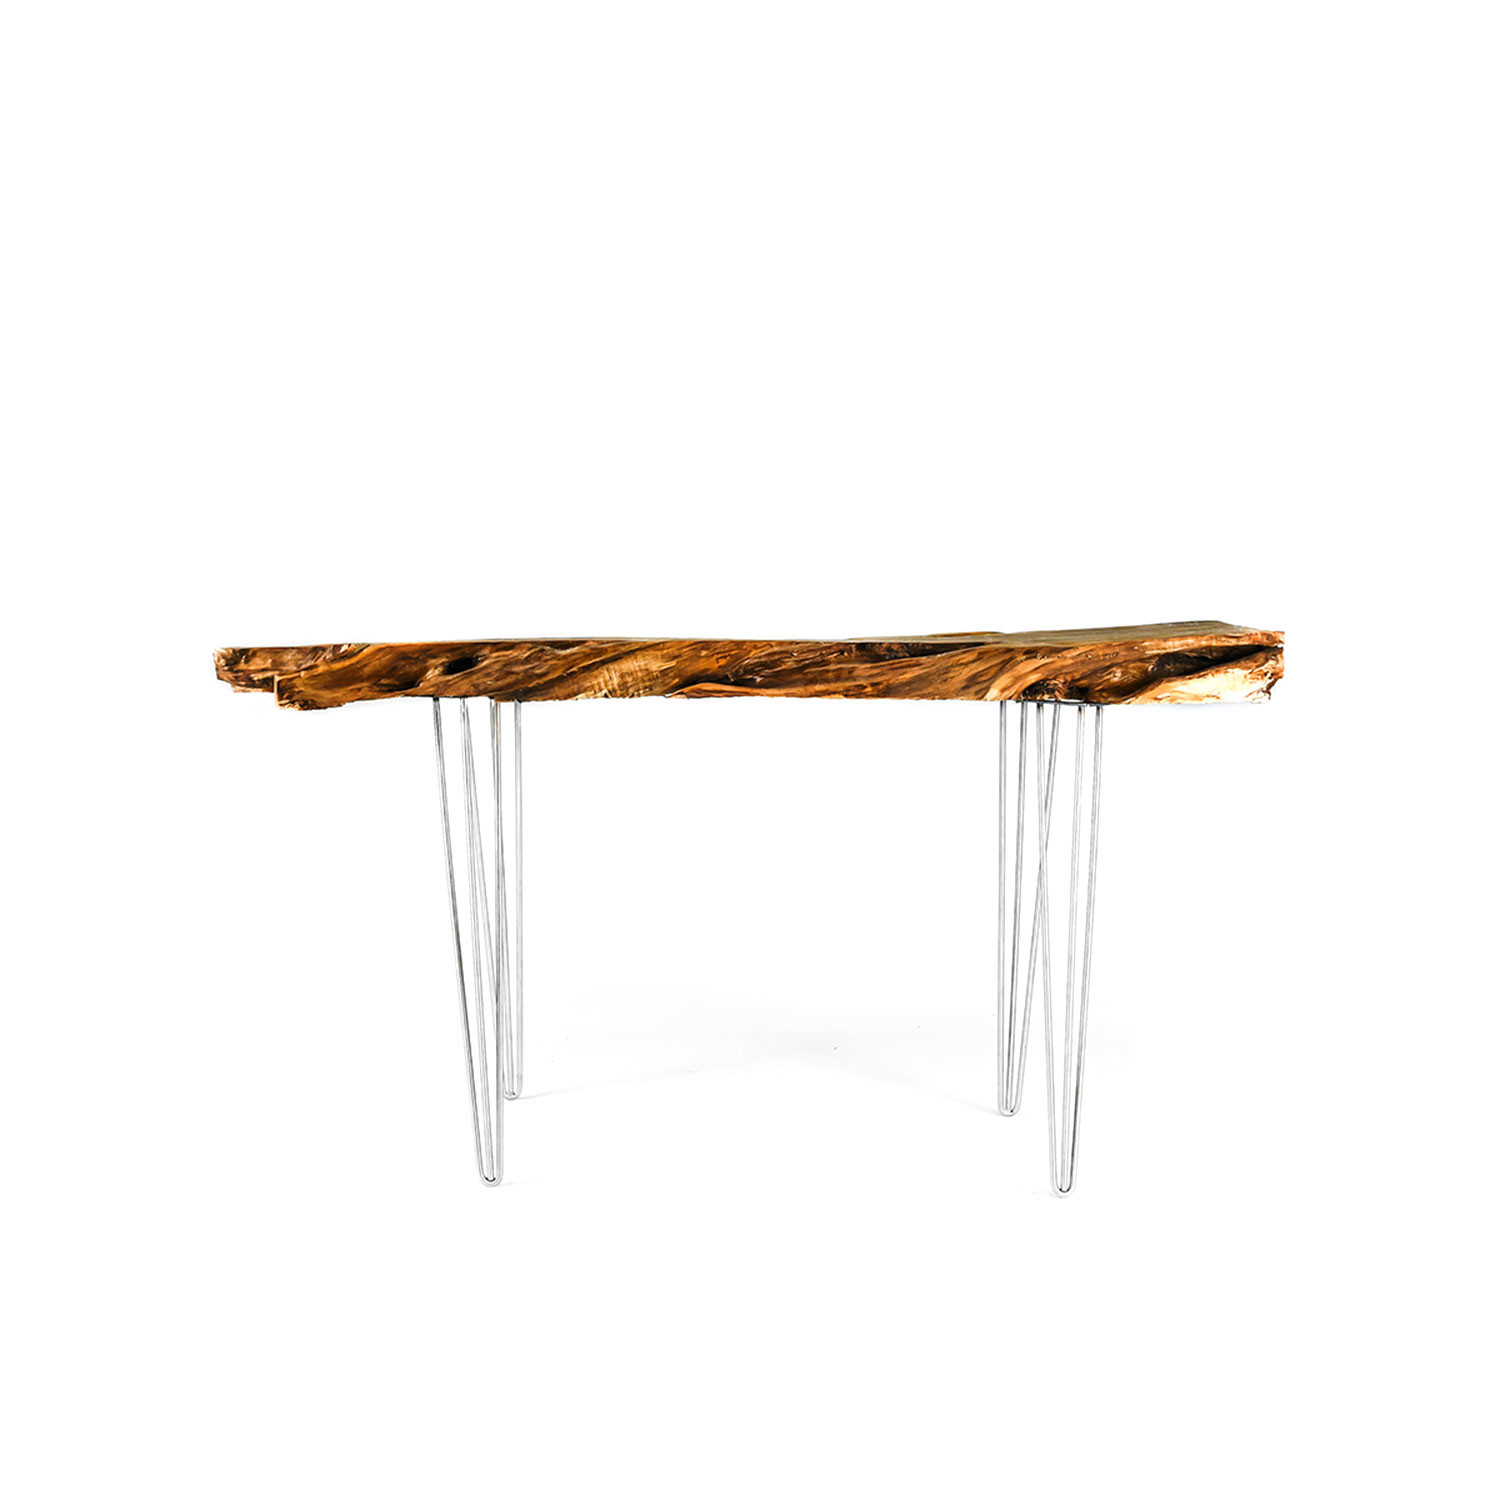 Live edge Buttonwood Coffee Table Natural Modern Wood Leg